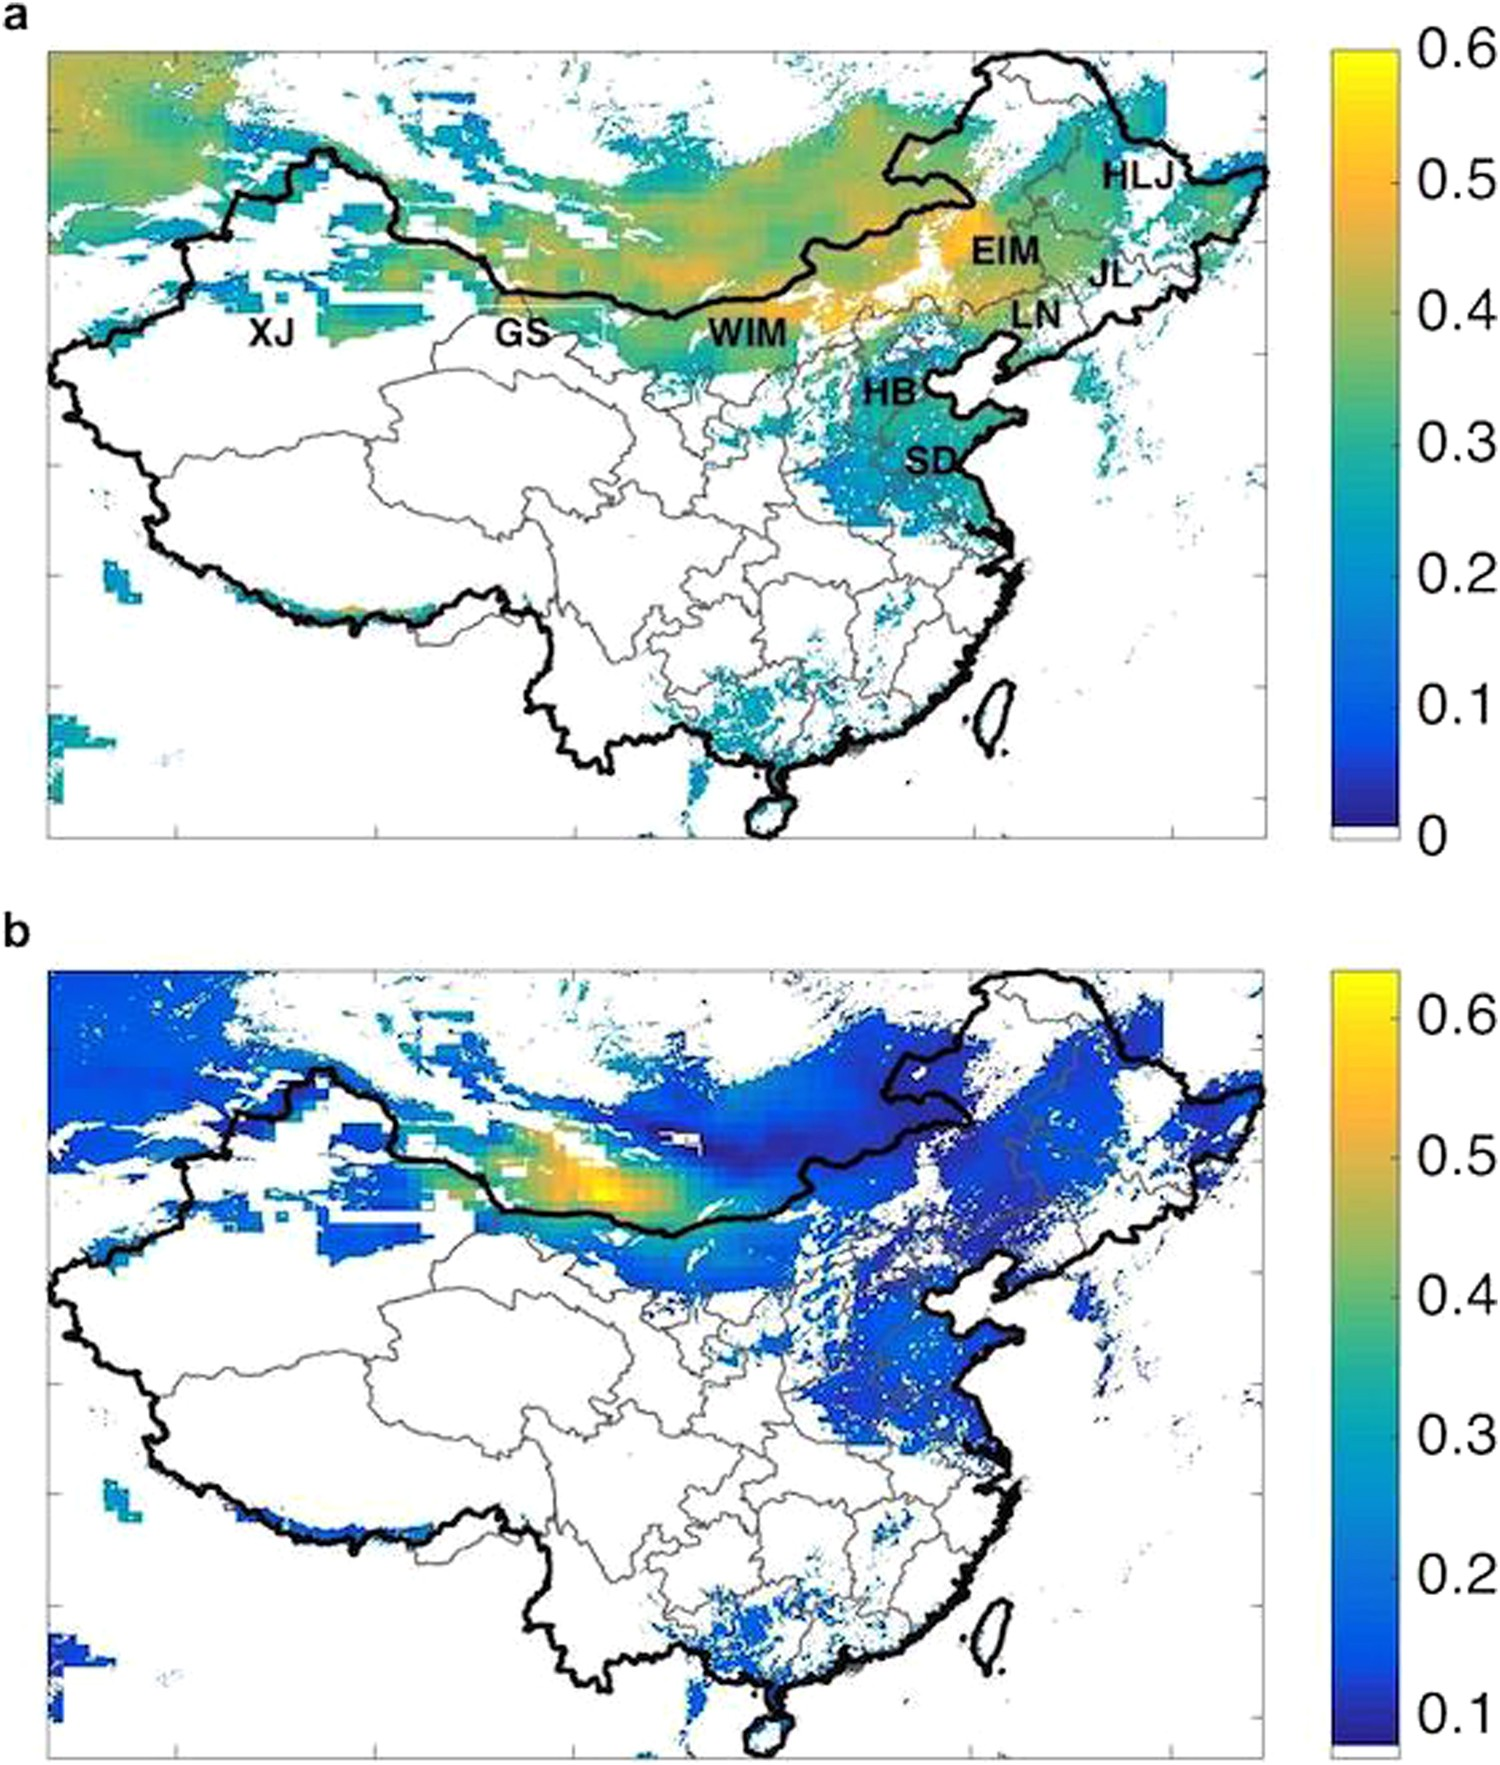 Wind-generated Electricity in China: Decreasing Potential